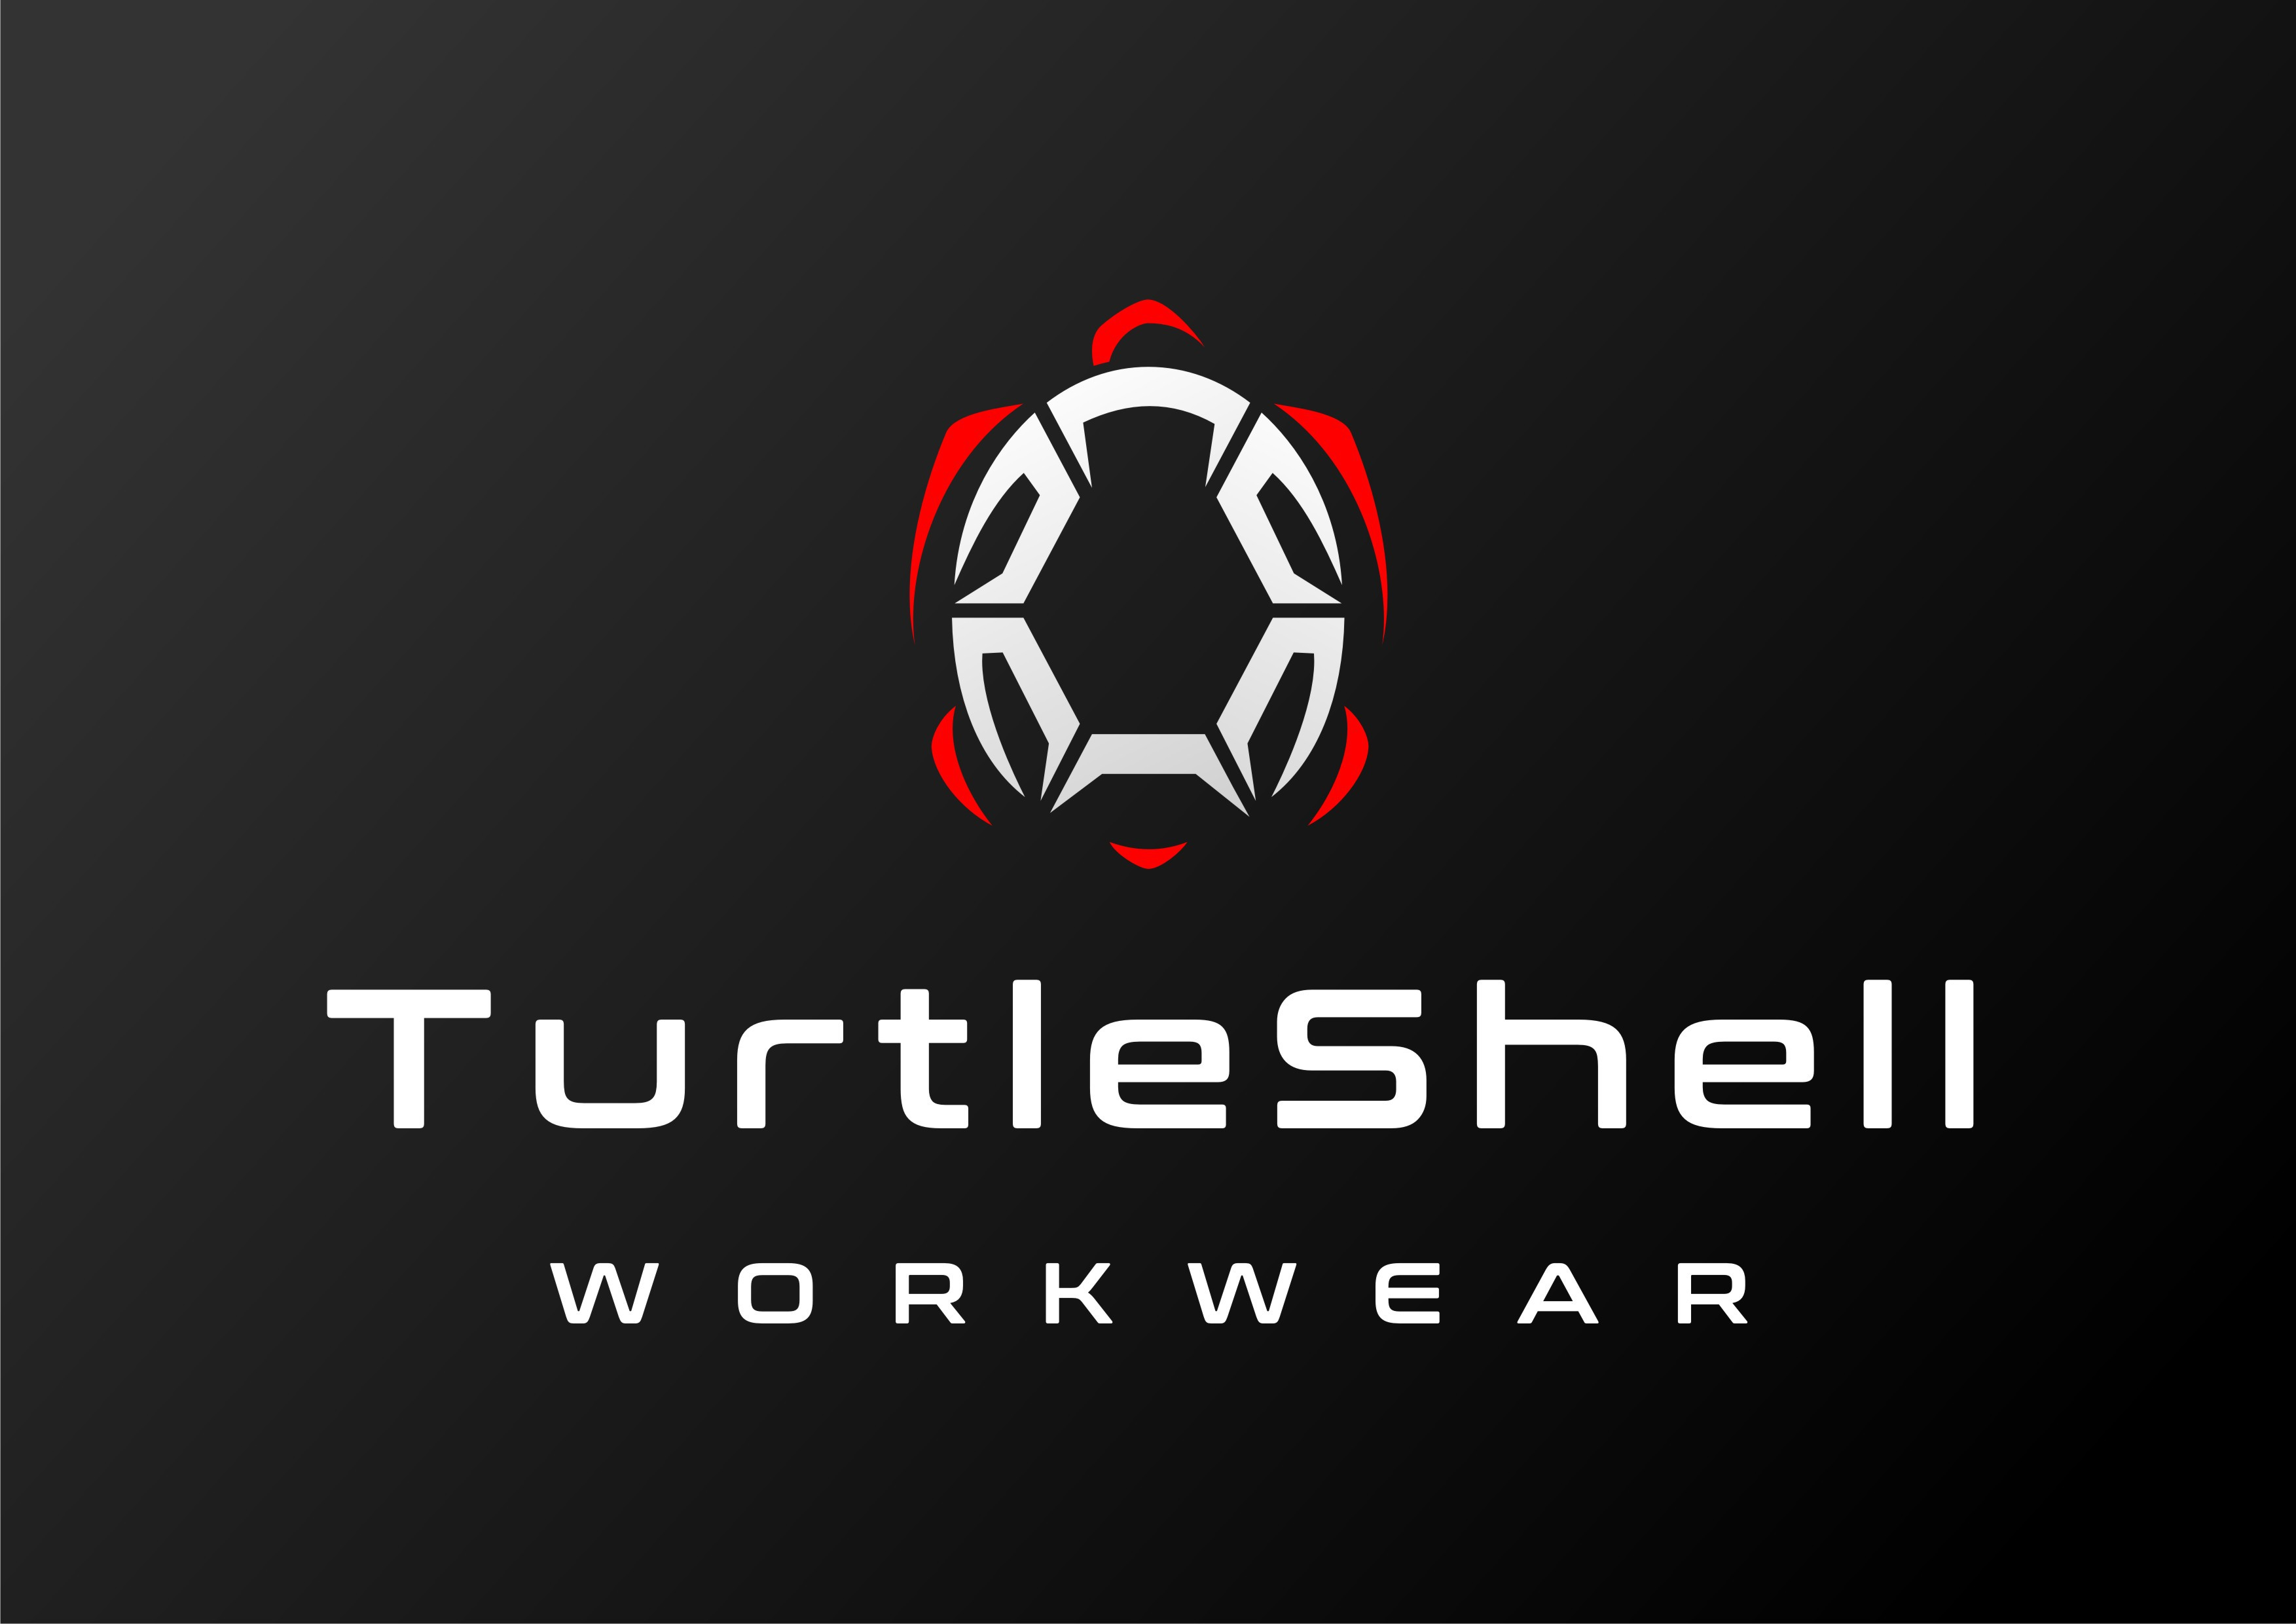 TurtleShell Workwear needs a logo that is tough and stylish